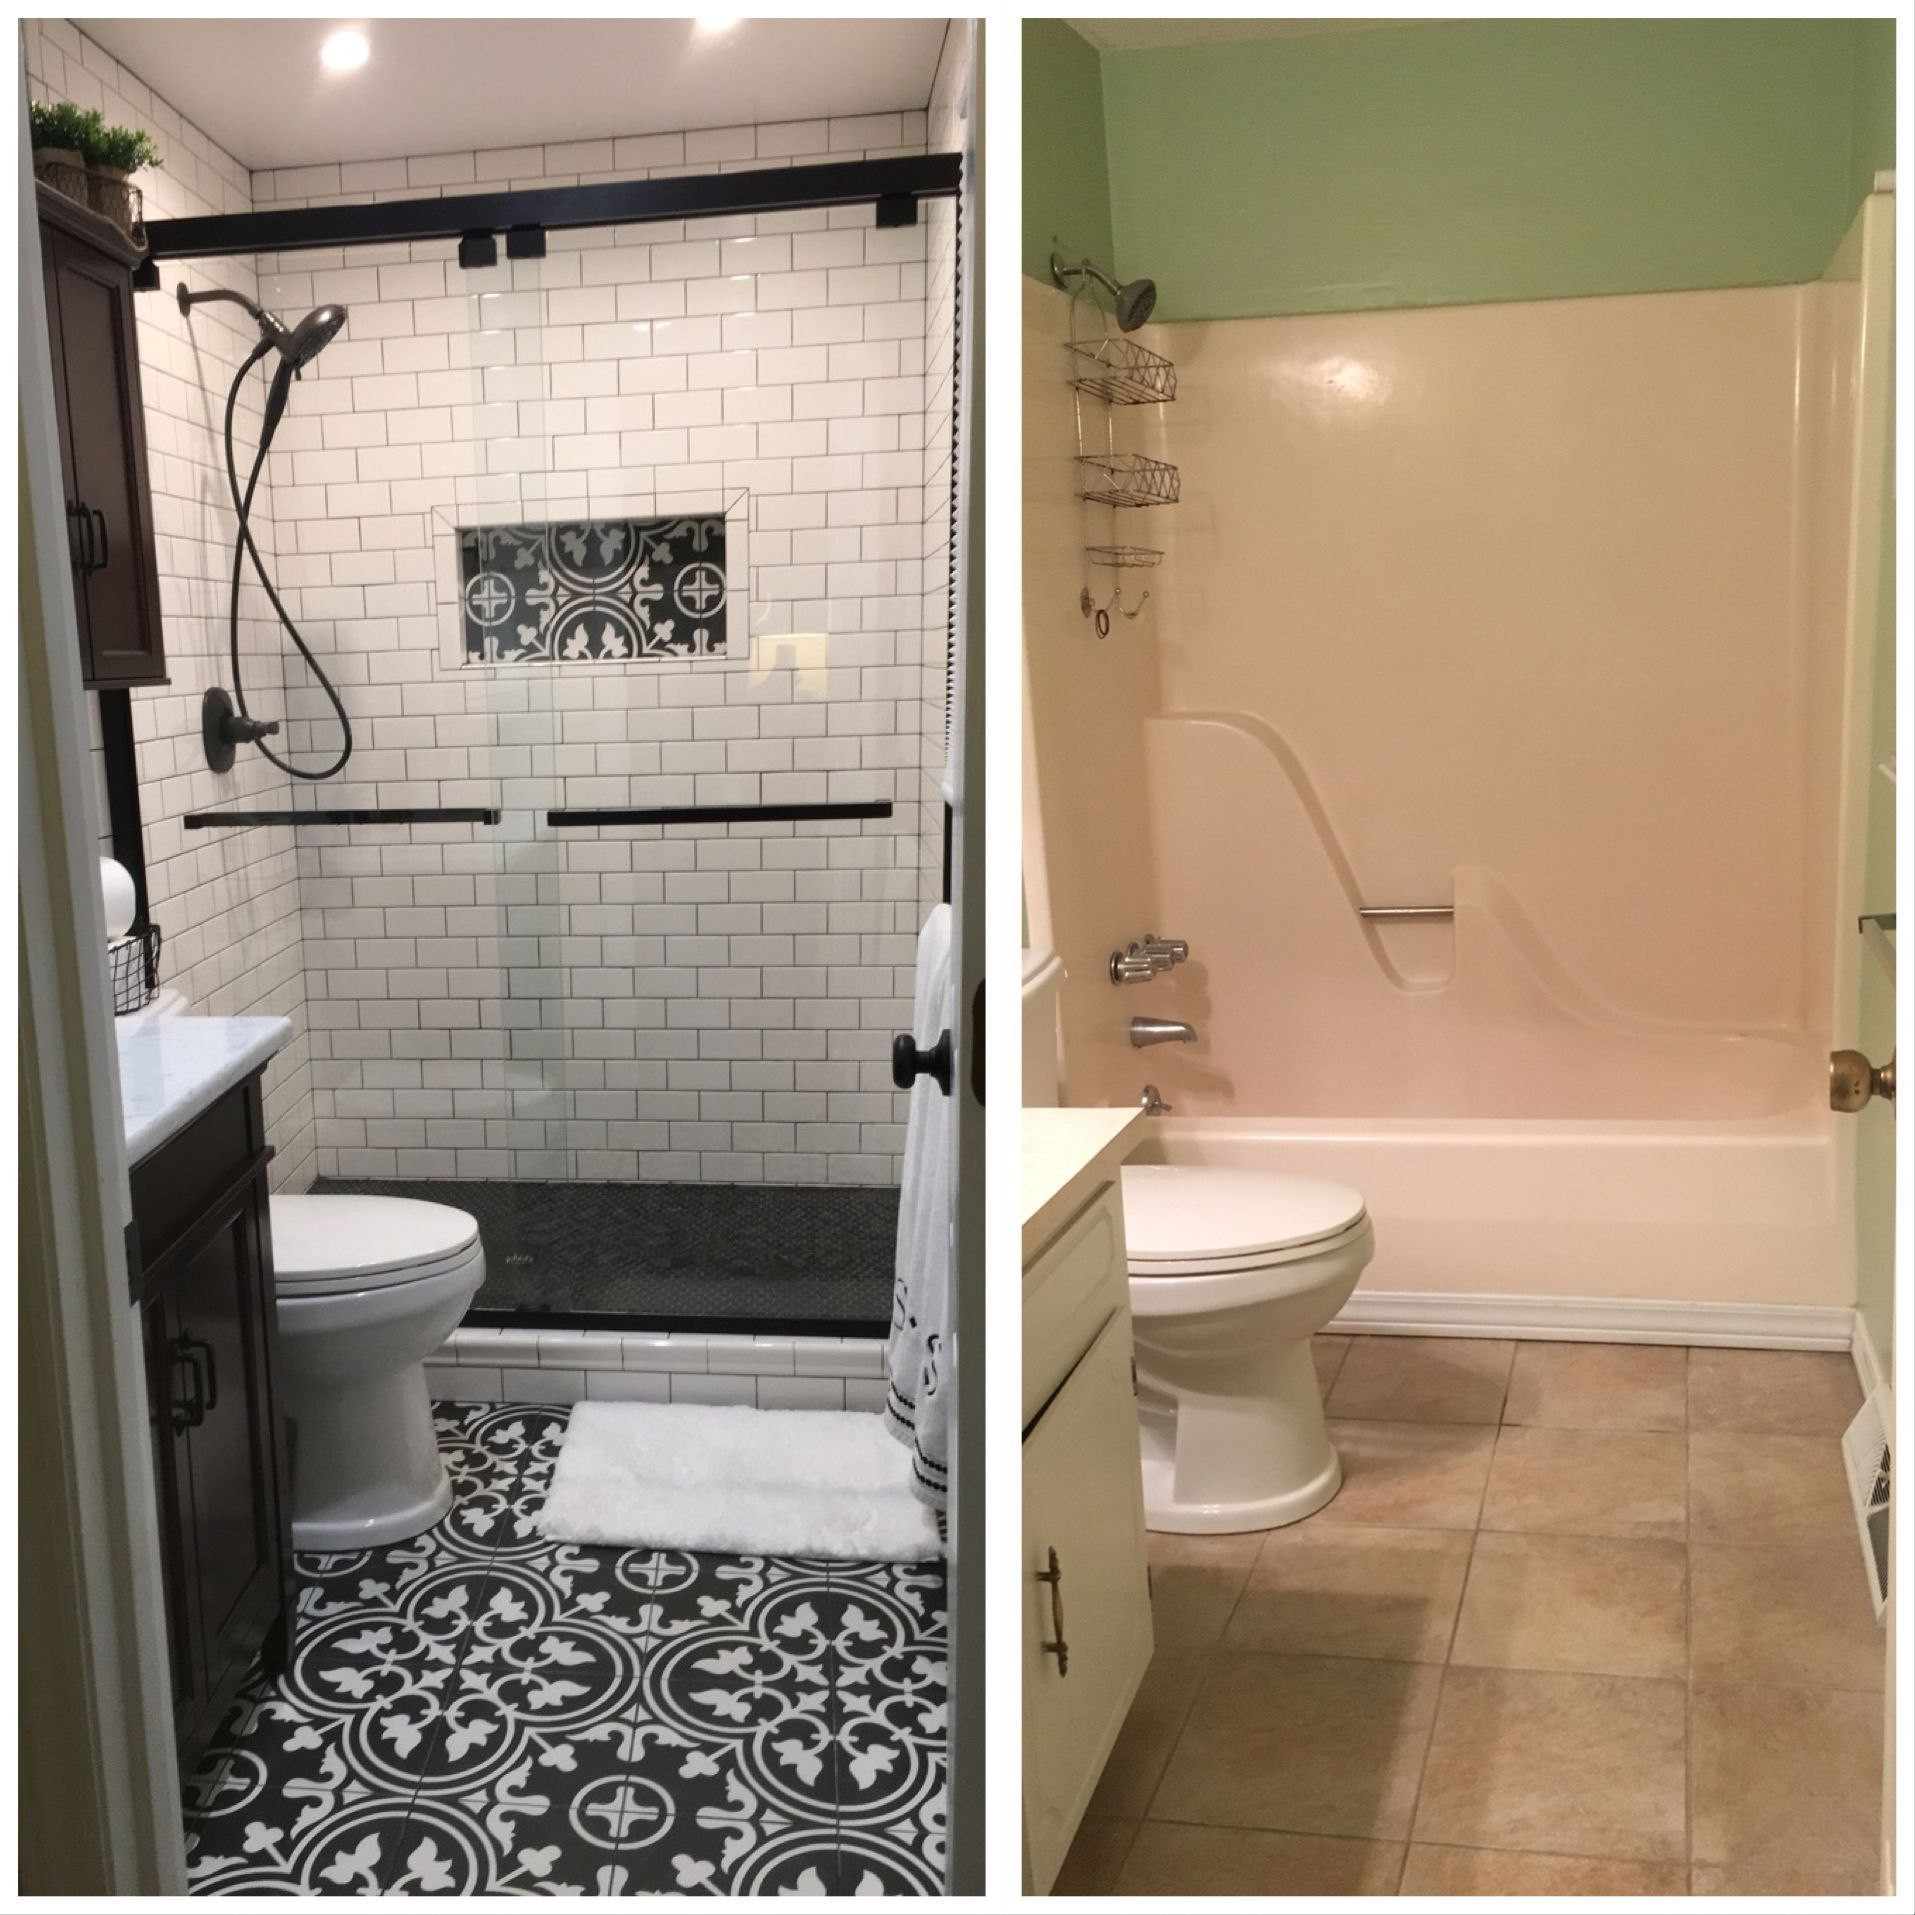 41 Ideas Of Bathroom Remodels For Tiny Rooms You Ll Wish To Replicate Bathroomrenosforsmallspaces Restroom Remodel Small Bathroom Remodel Bathrooms Remodel